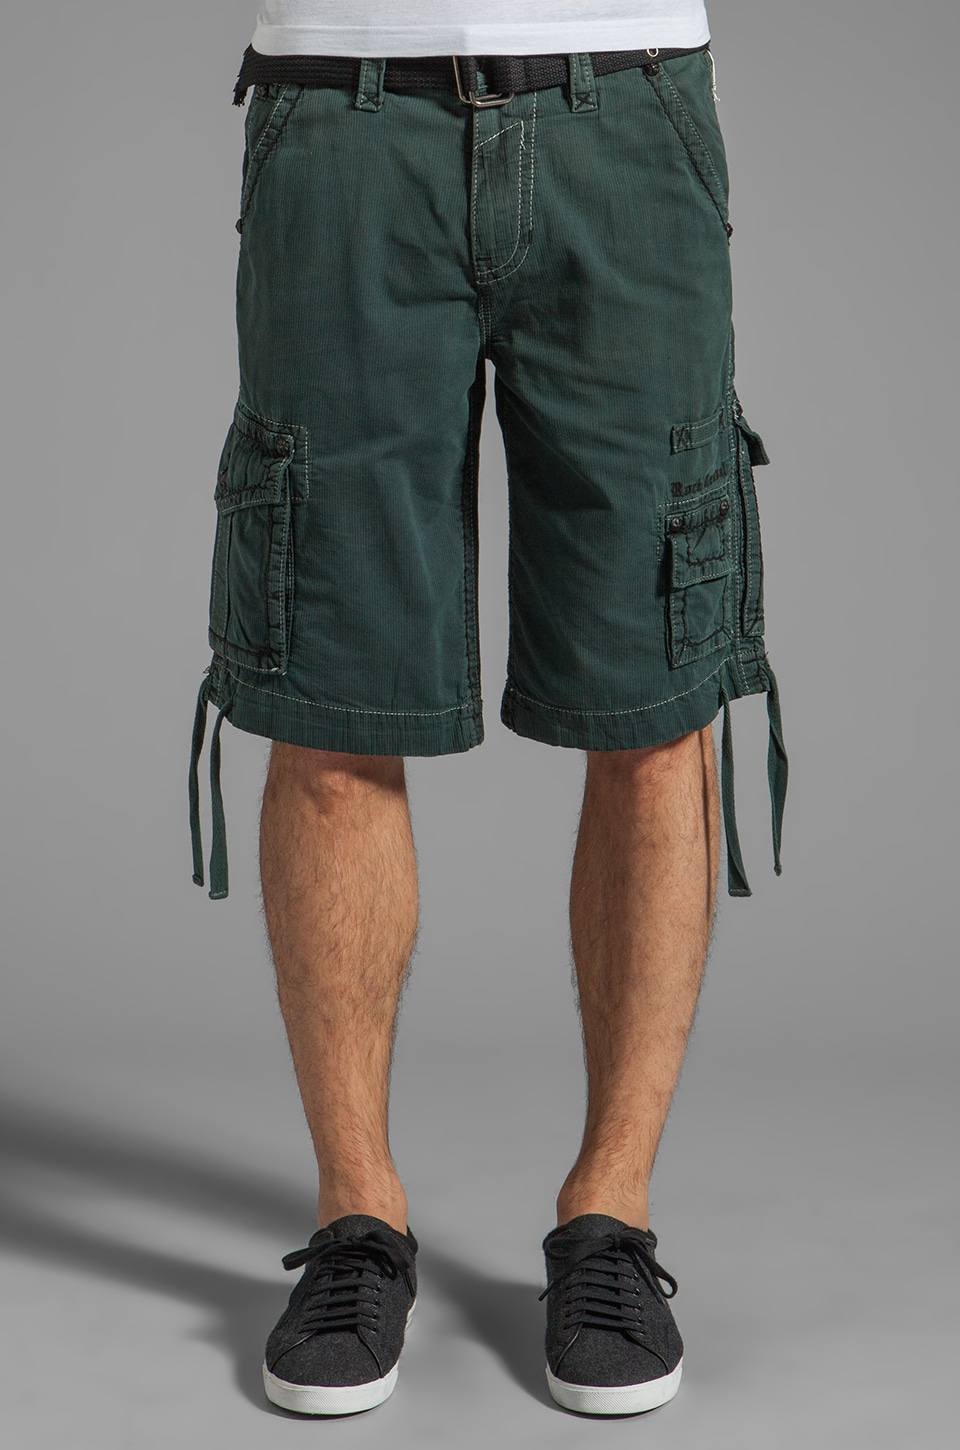 Rock Revival Cargo Short in Teal